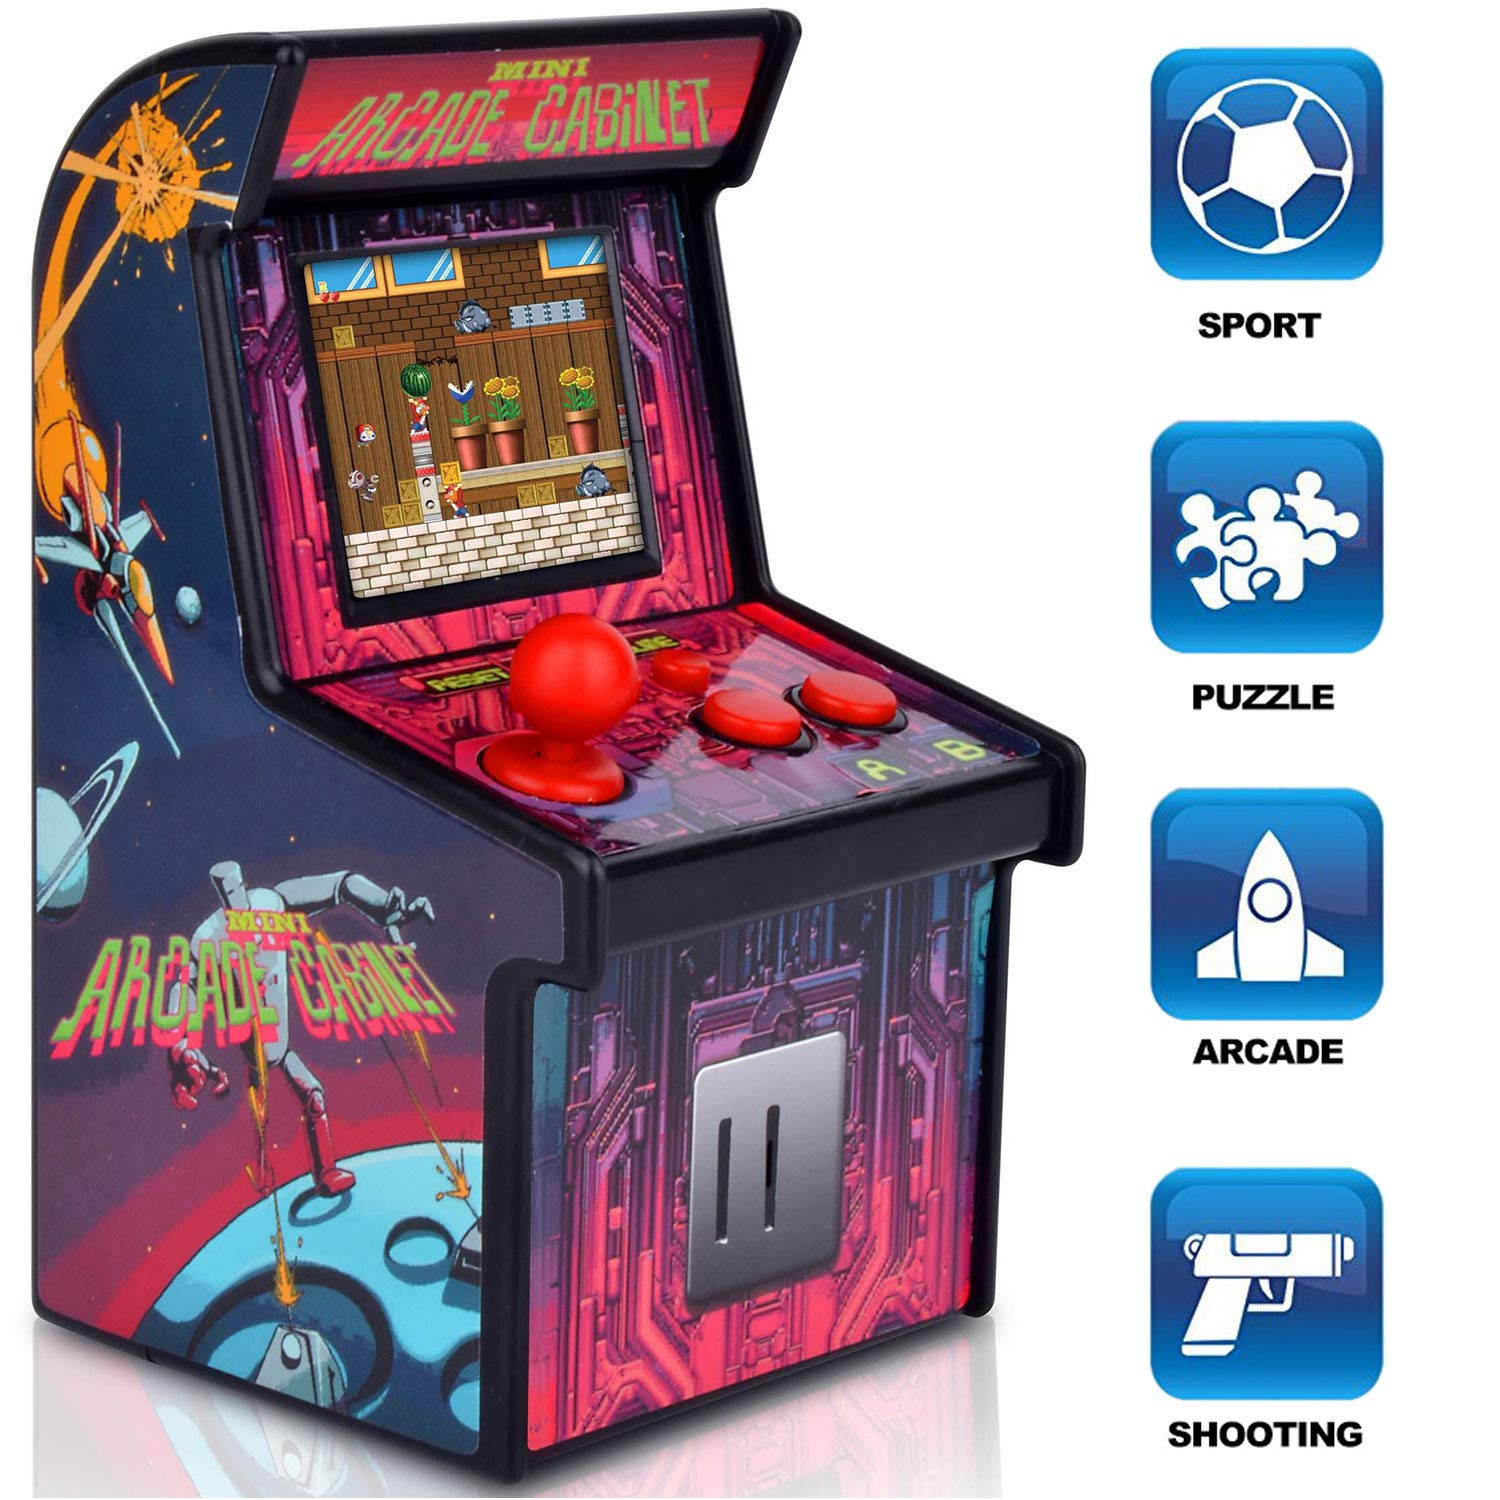 GBD Kids Mini Retro Arcade Game Cabinet Machine 200 Classic Handheld Video Games 2.5'' Display Joystick Travel Portable Game Player Kids Boys Girls Holiday Birthday Gifts Electronic Toys by GBD (Image #3)